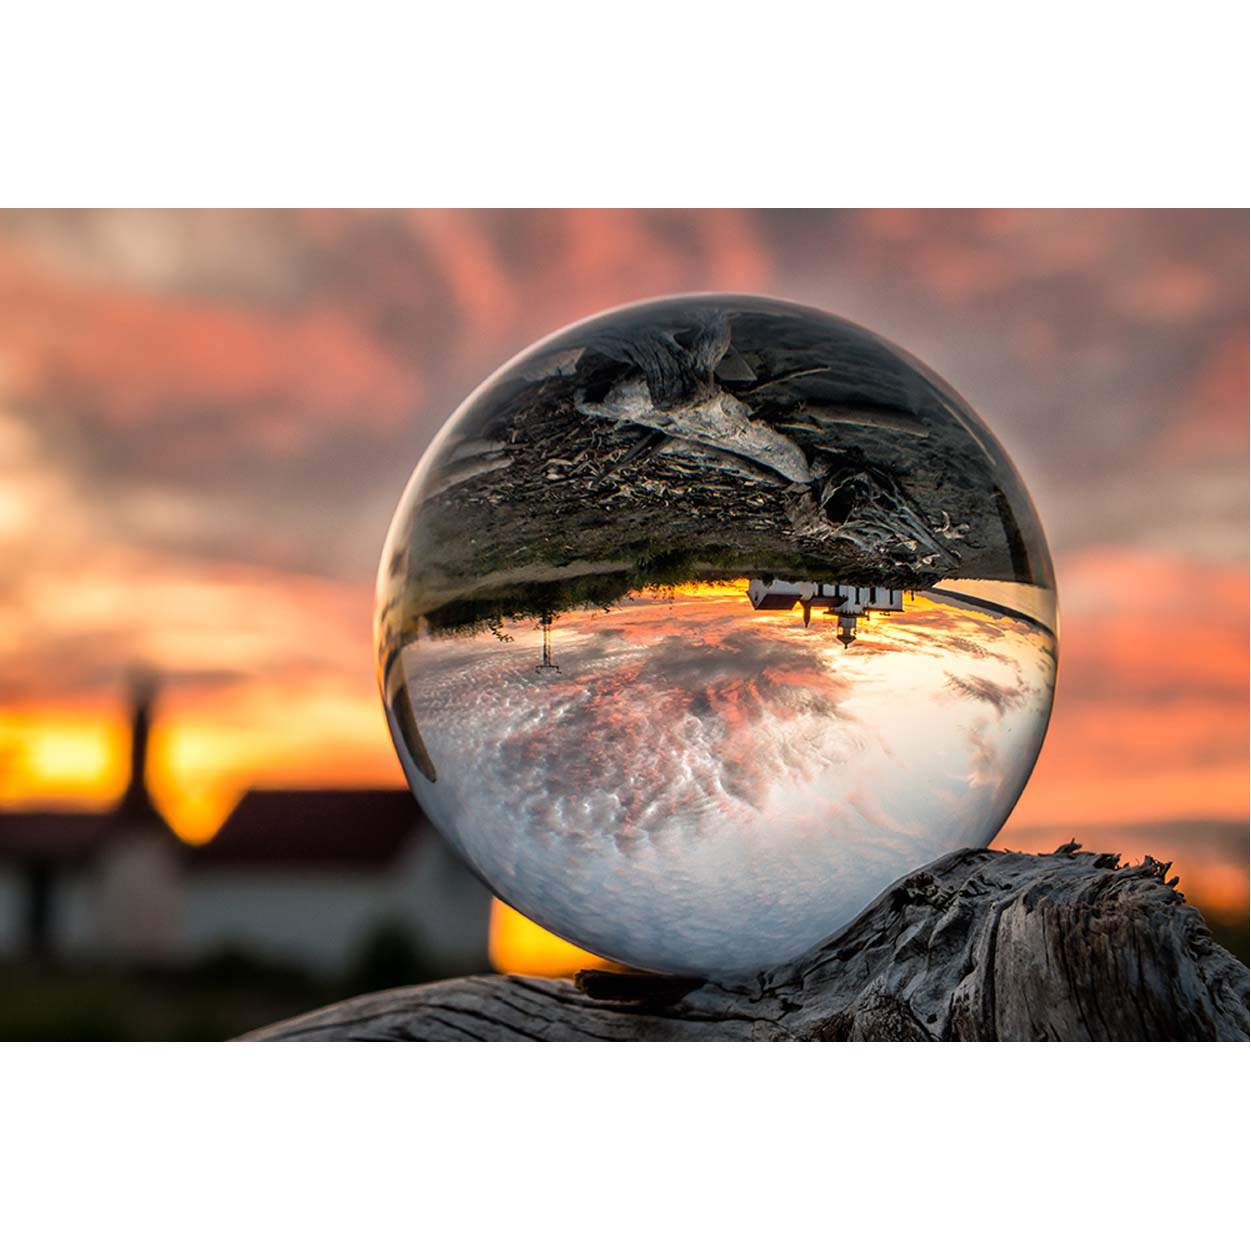 Foresight Crystal Glass Ball for Photography 80mm - Camera ...